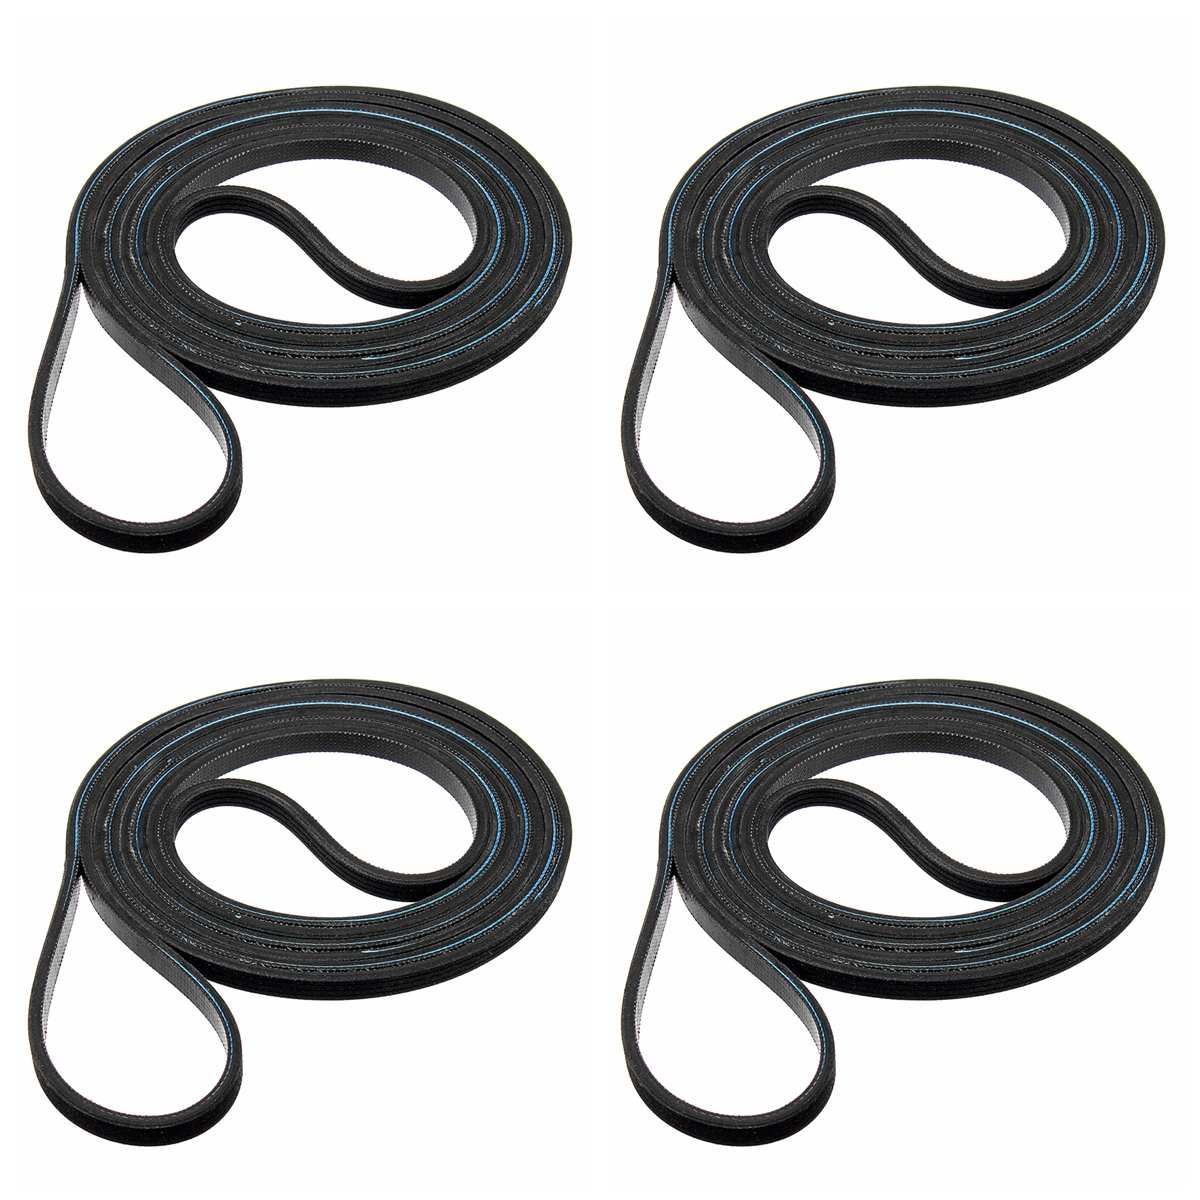 4Pcs 220cm 0.6cm Dryer Drum Belt For Frigidaire Electrolux 137292700 AP4565702 PS3408299 WE12M29 134503900